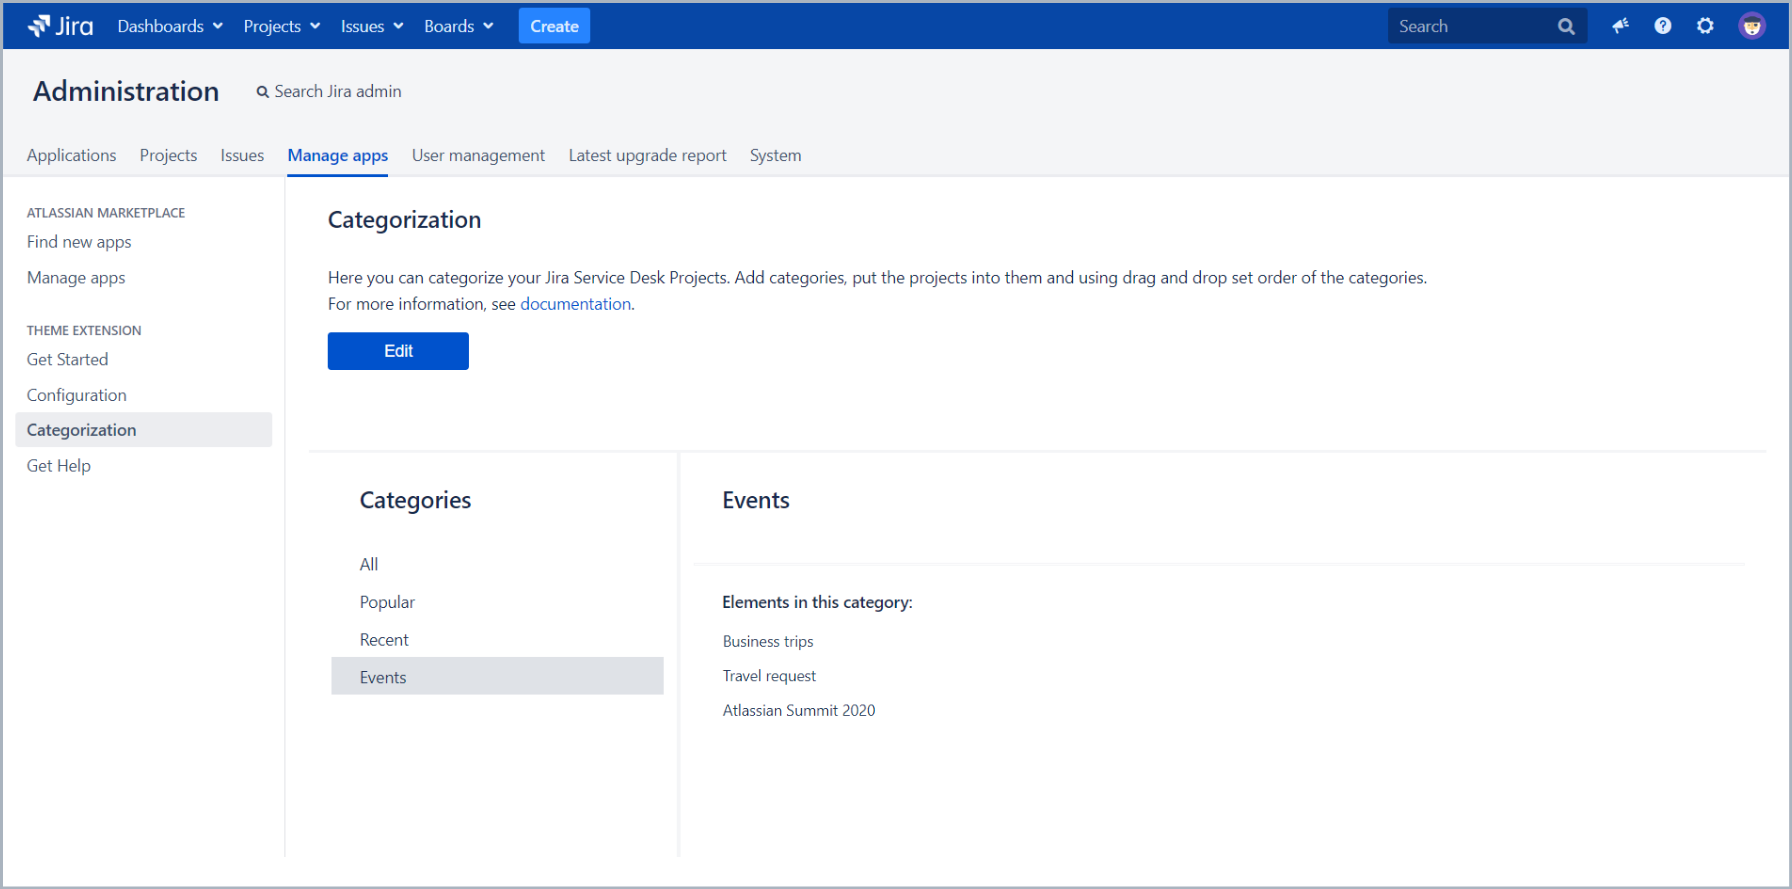 You can set categories configuration with Theme Extension for Jira Service Desk